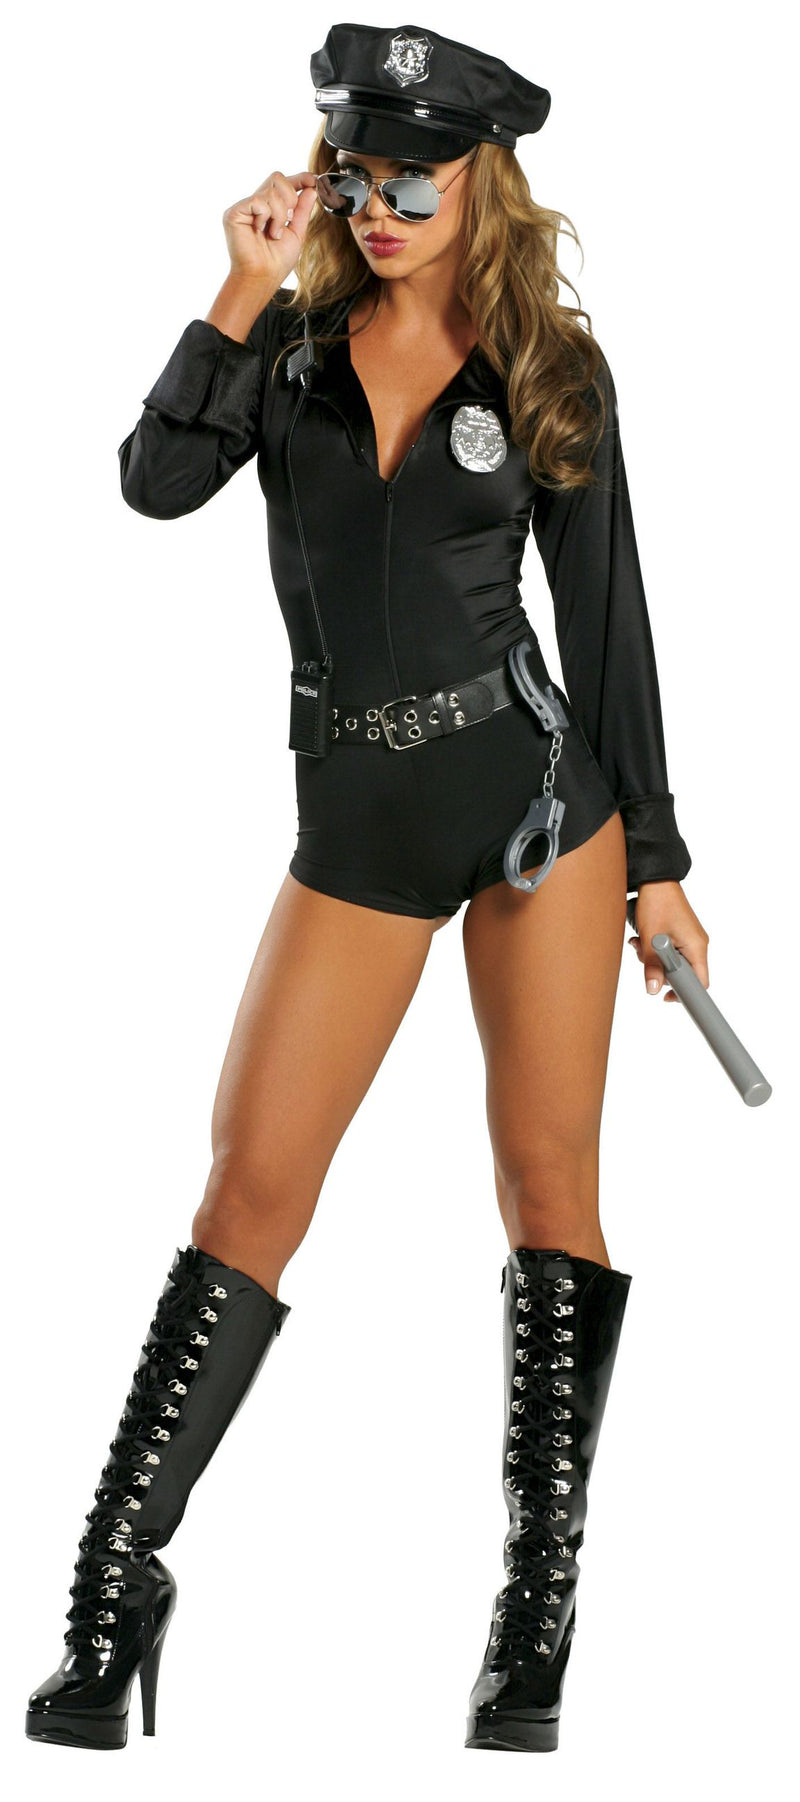 7-Piece-Police-Officer-Cop-Long-Sleeve-Romper-w/-Accessories-Party-Costume